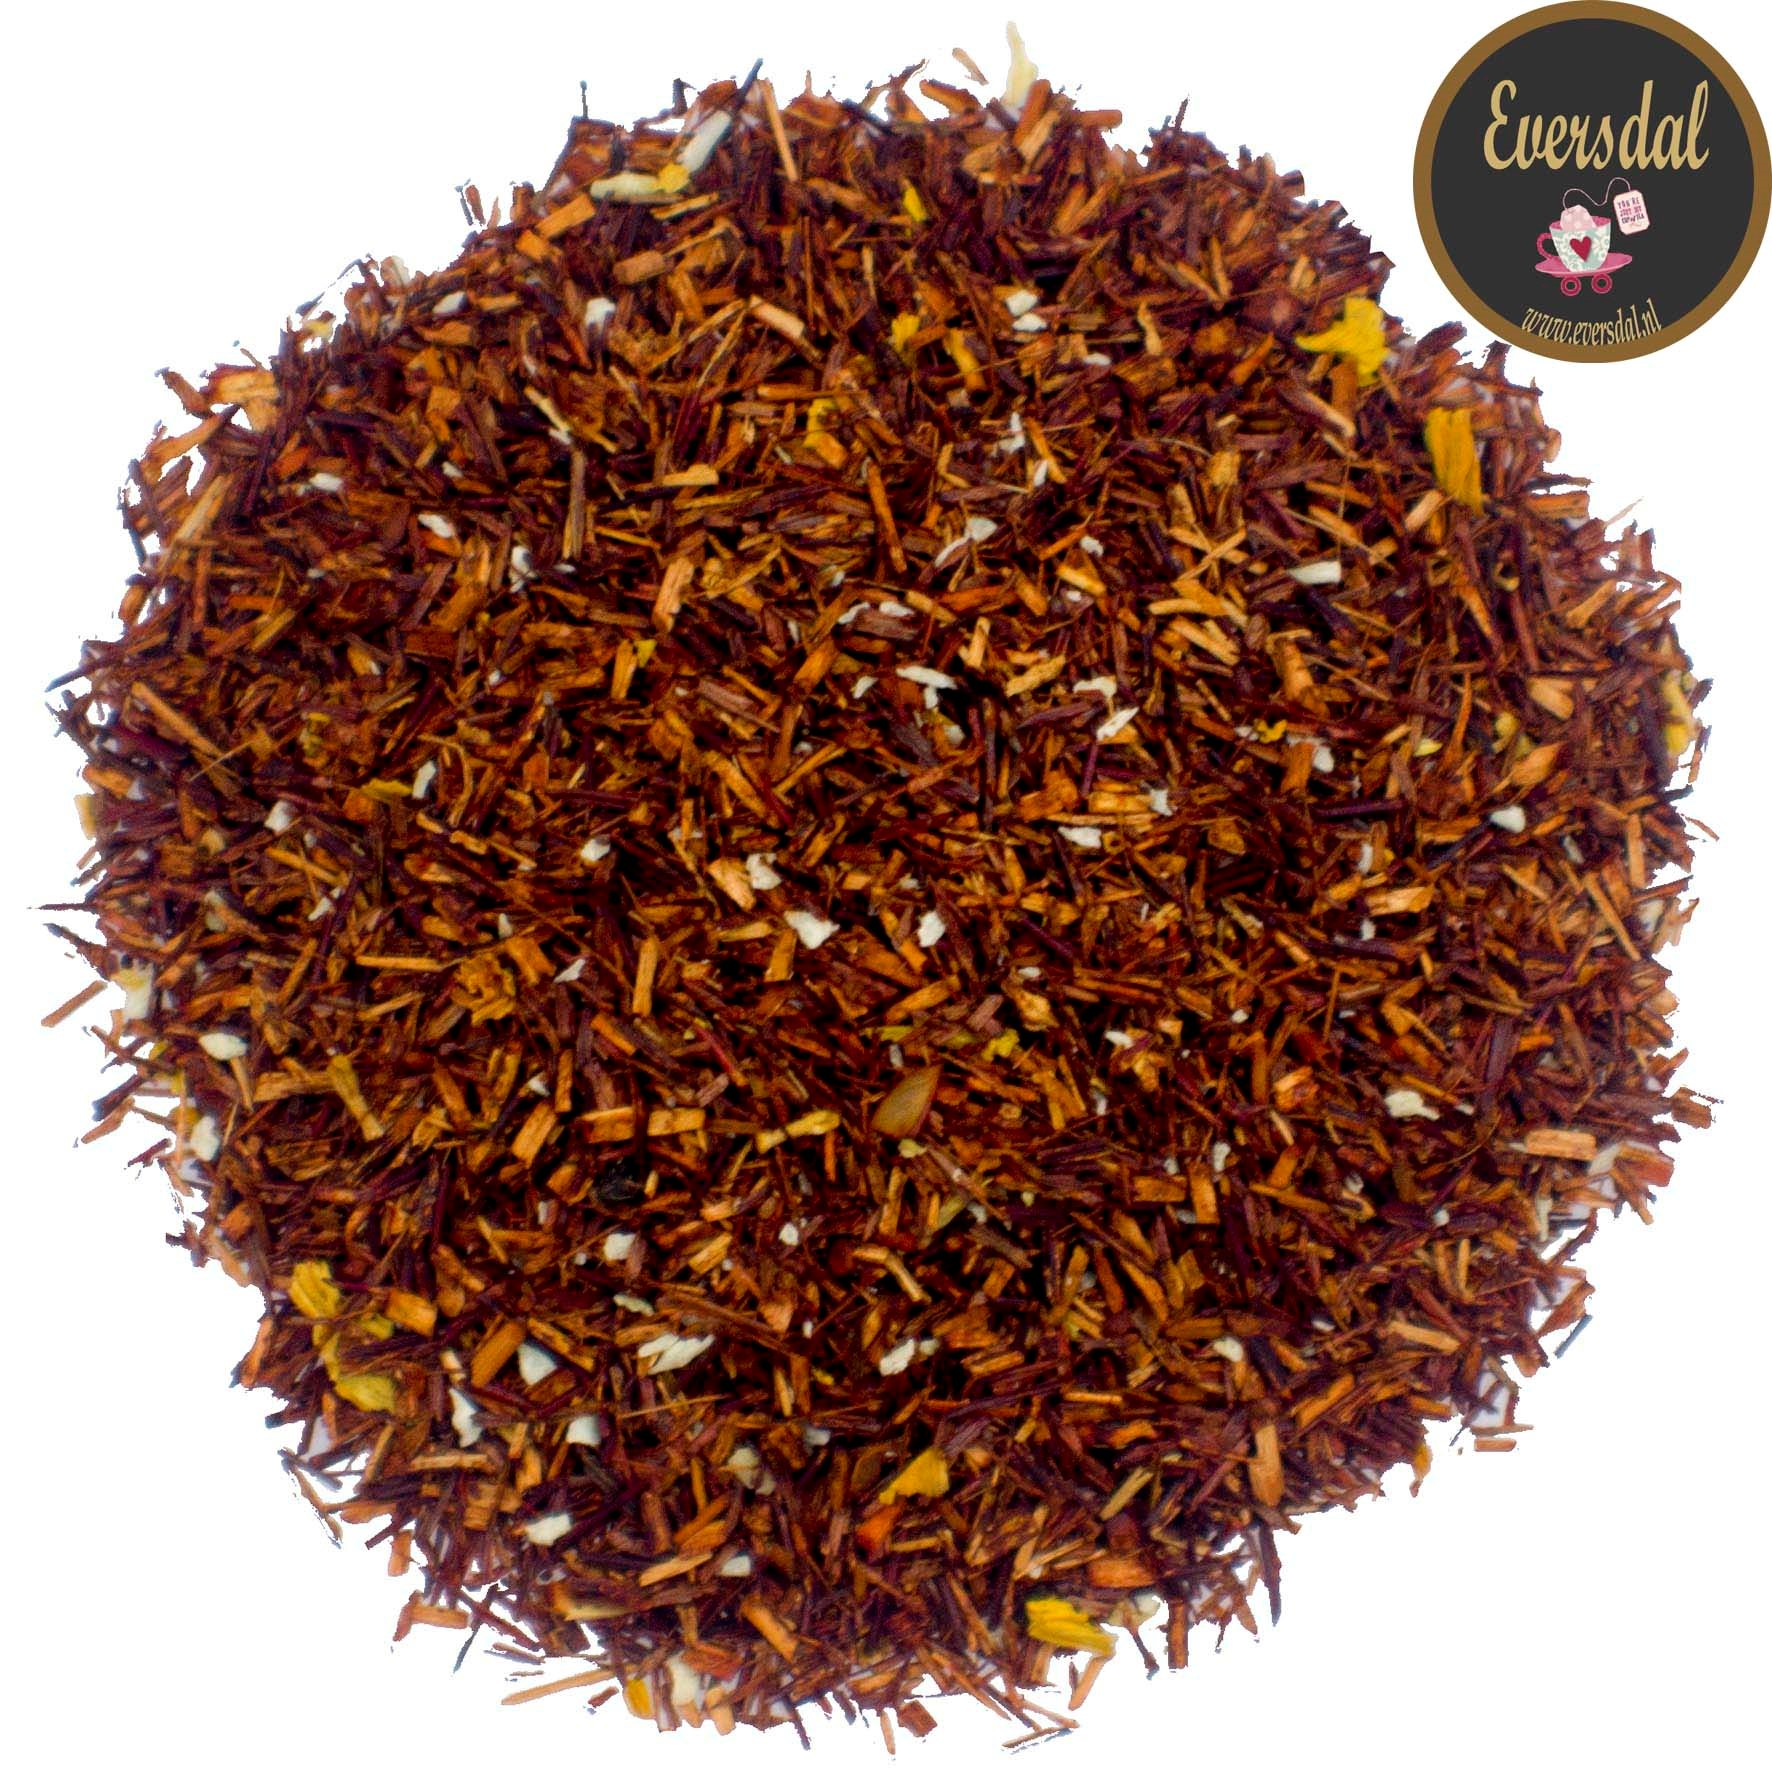 Rooibos Gepofte Kastanje (Redbush Puffed Chestnuts)